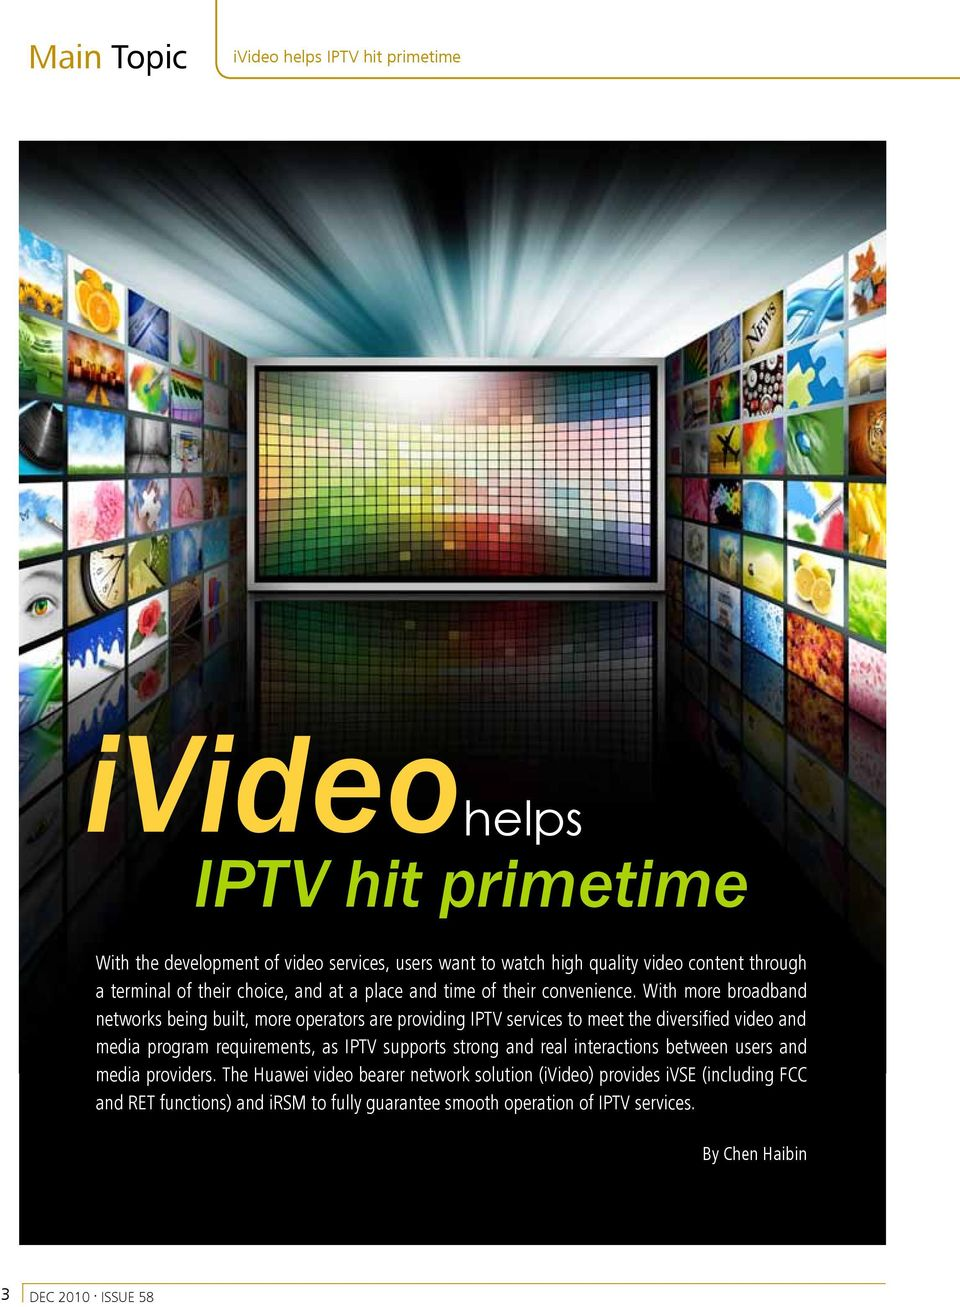 With more broadband networks being built, more operators are providing IPTV services to meet the diversified video and media program requirements, as IPTV